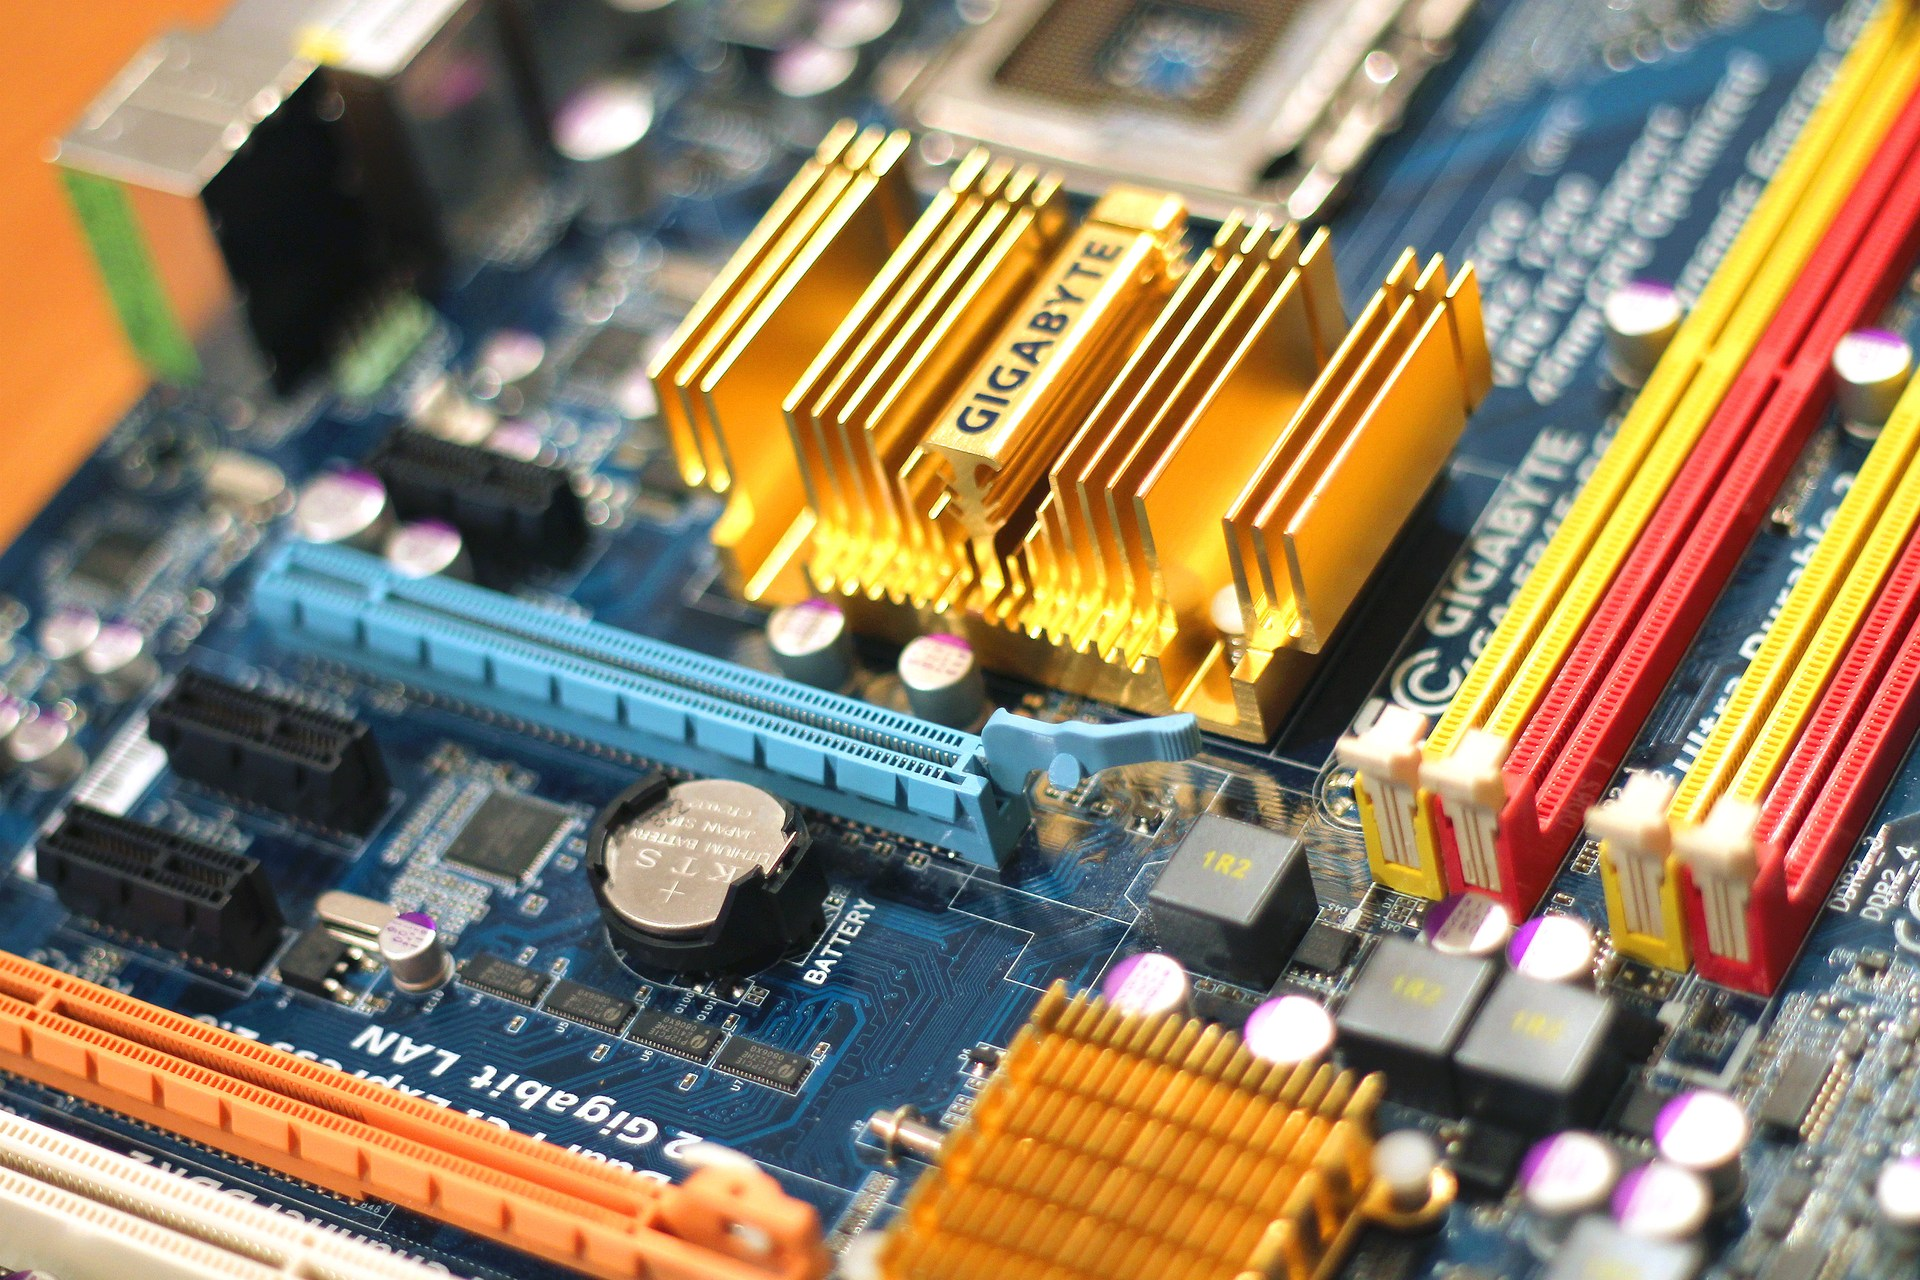 graphic image motherboard